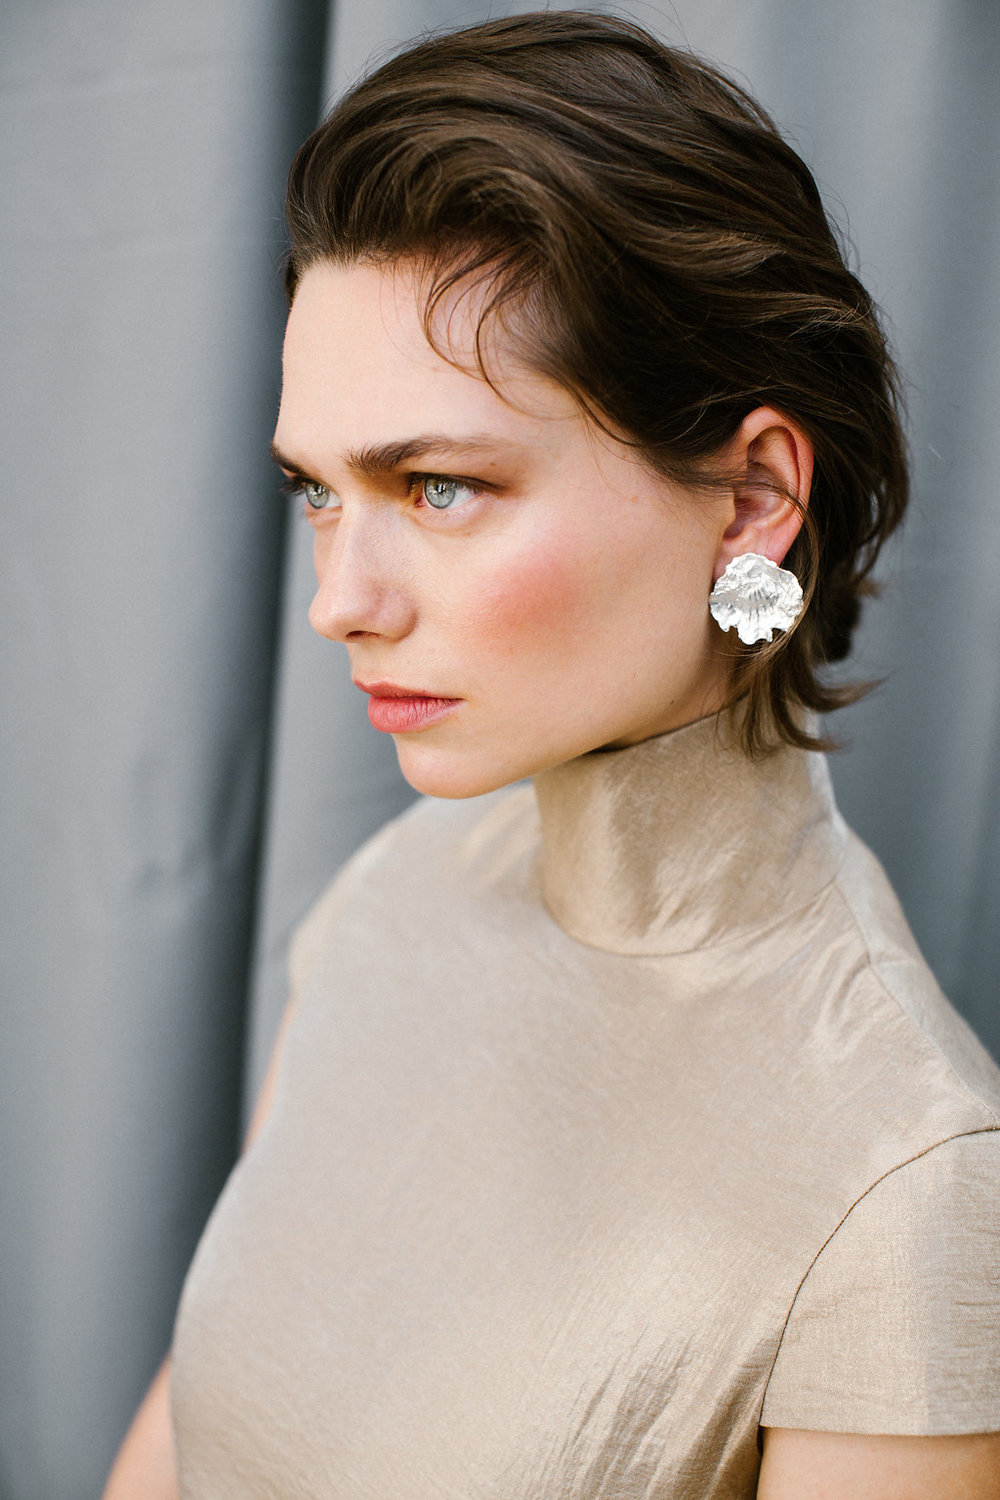 The Cardea earring handmade Sterling Silver earrings by Naturae Design.